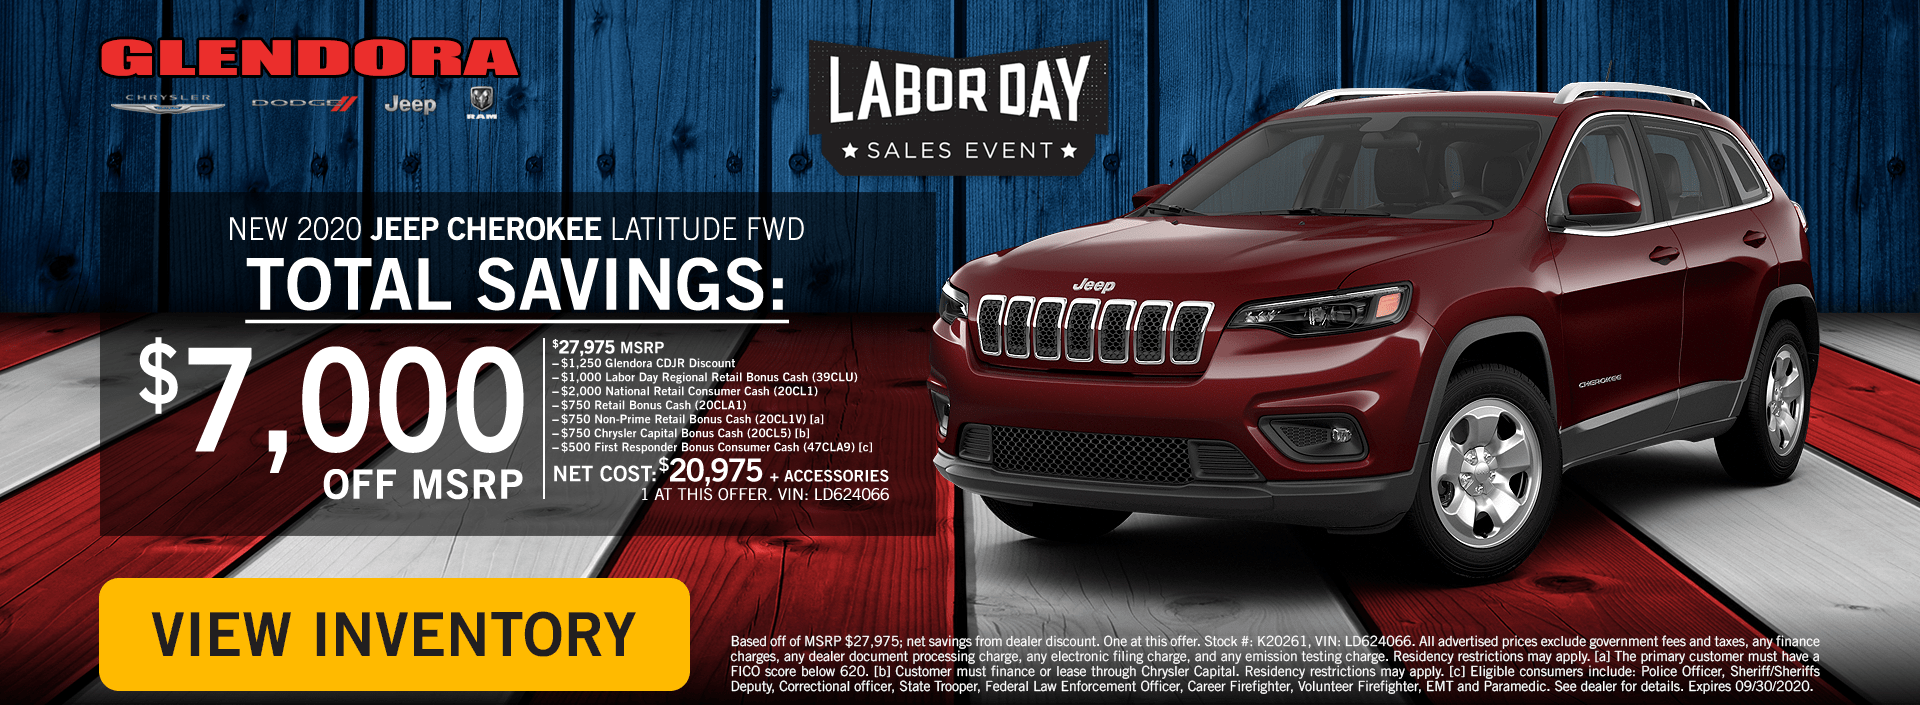 Labor Day Deals - Jeep Cherokee